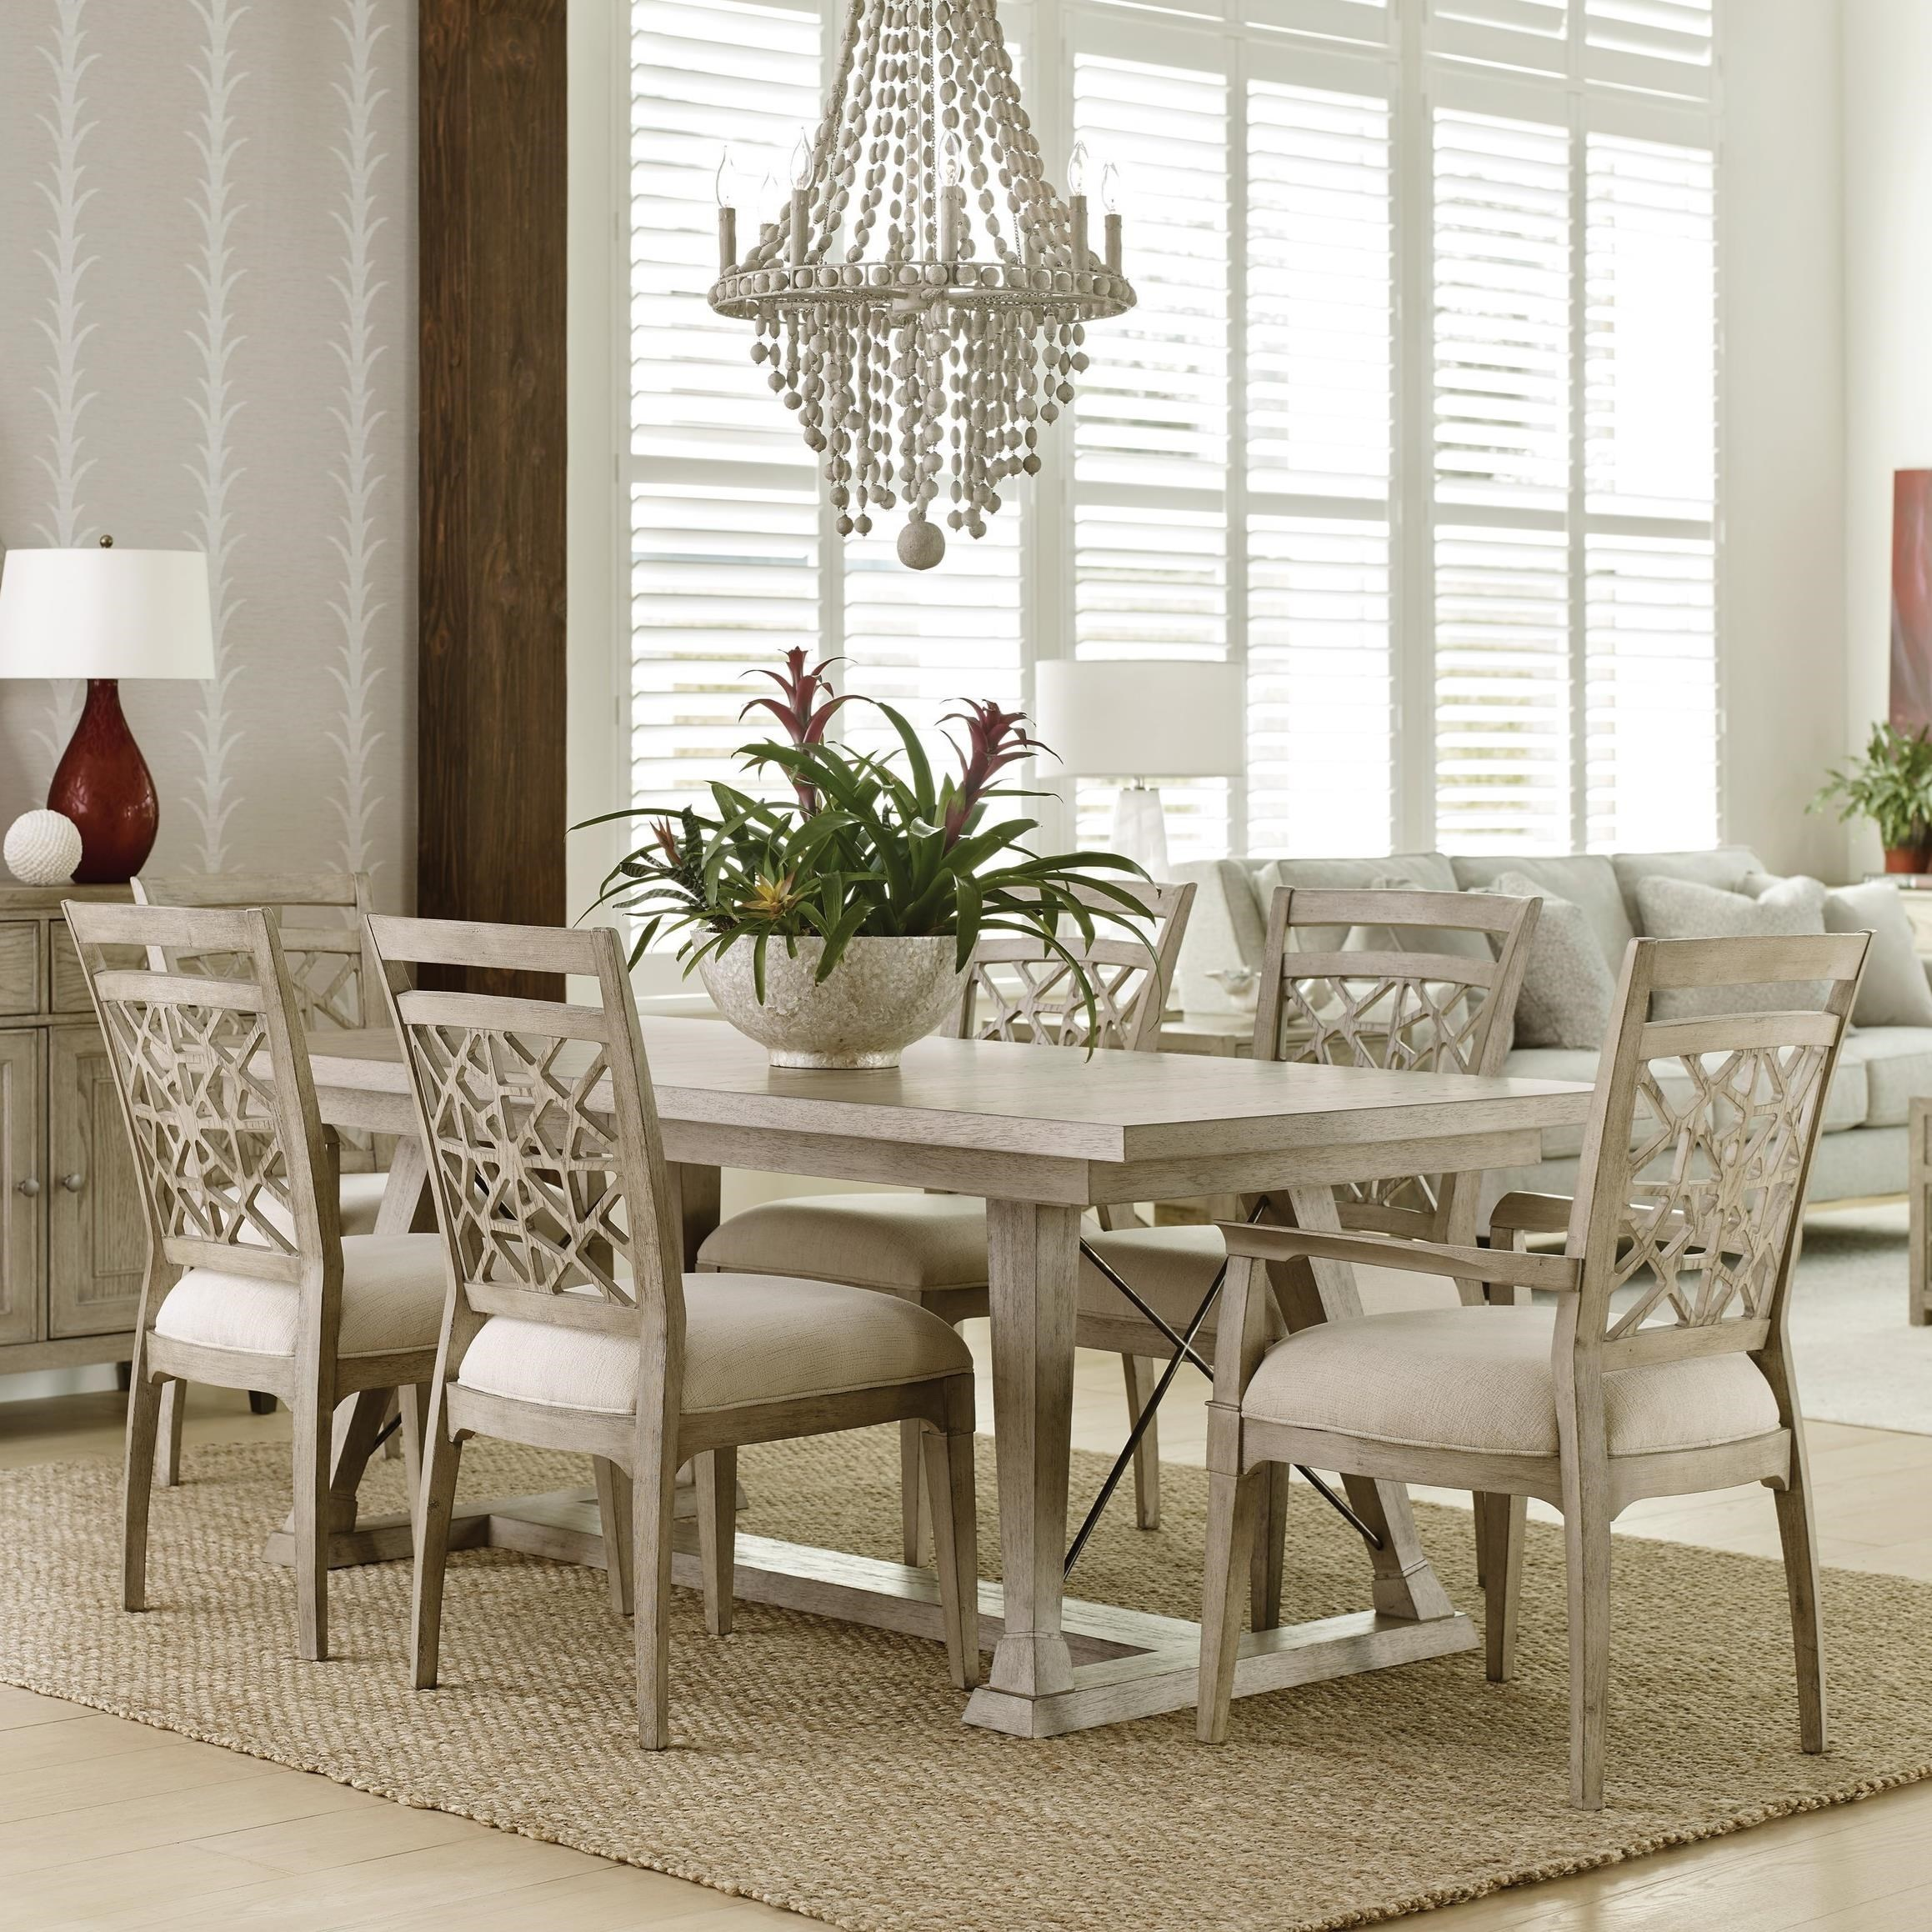 7 piece dining set with leaf arm chair american drew vista7 piece dining set with removable leaves vista relaxed vintage